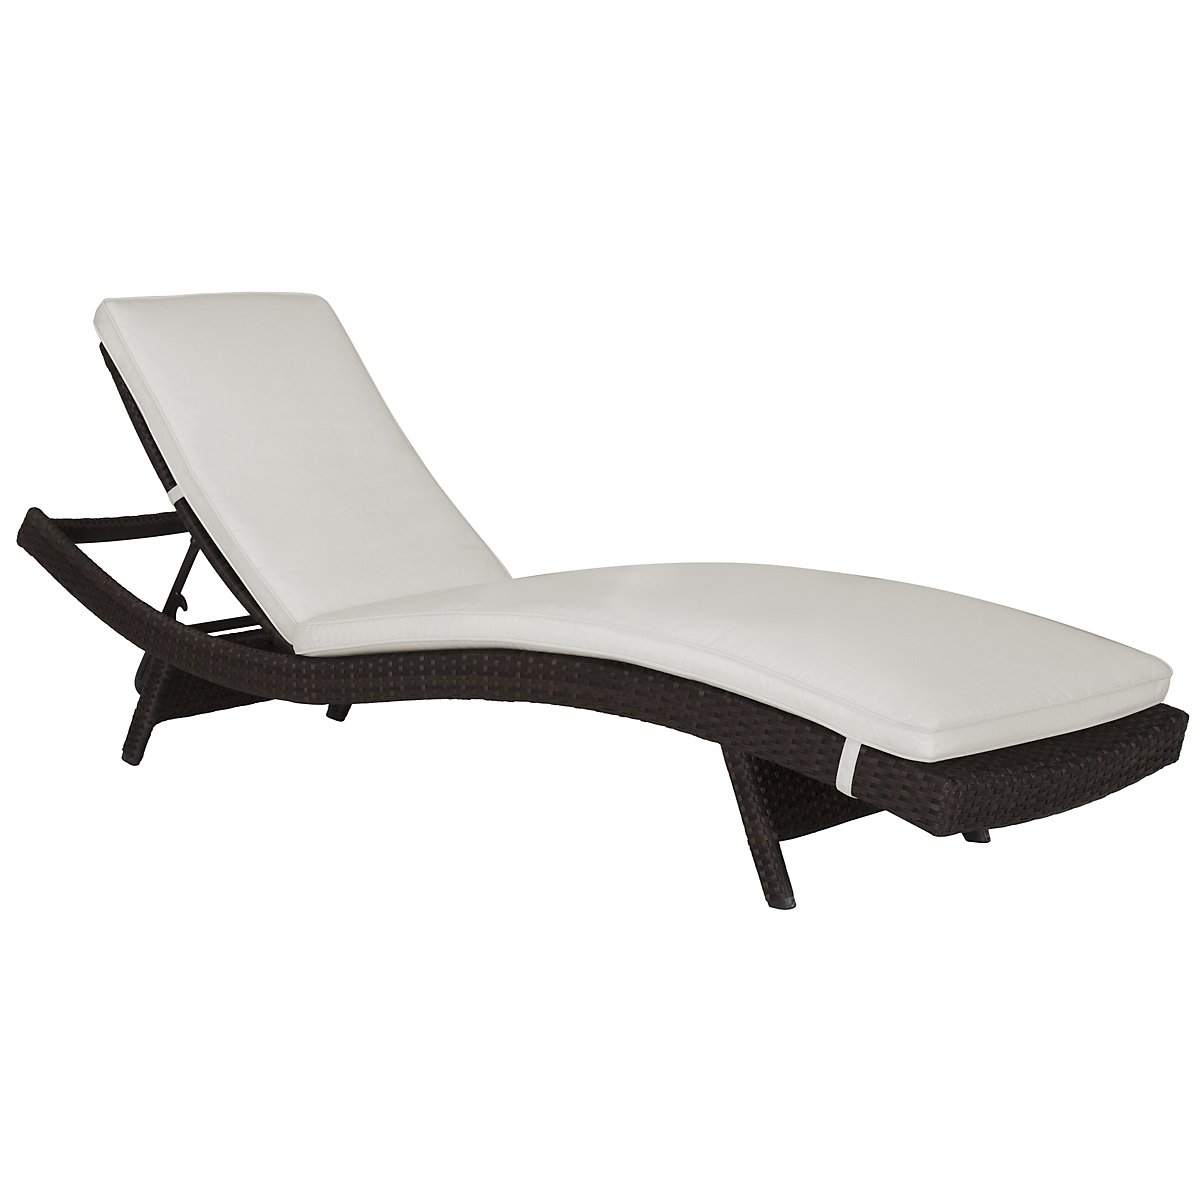 Grate White Cushioned Chaise